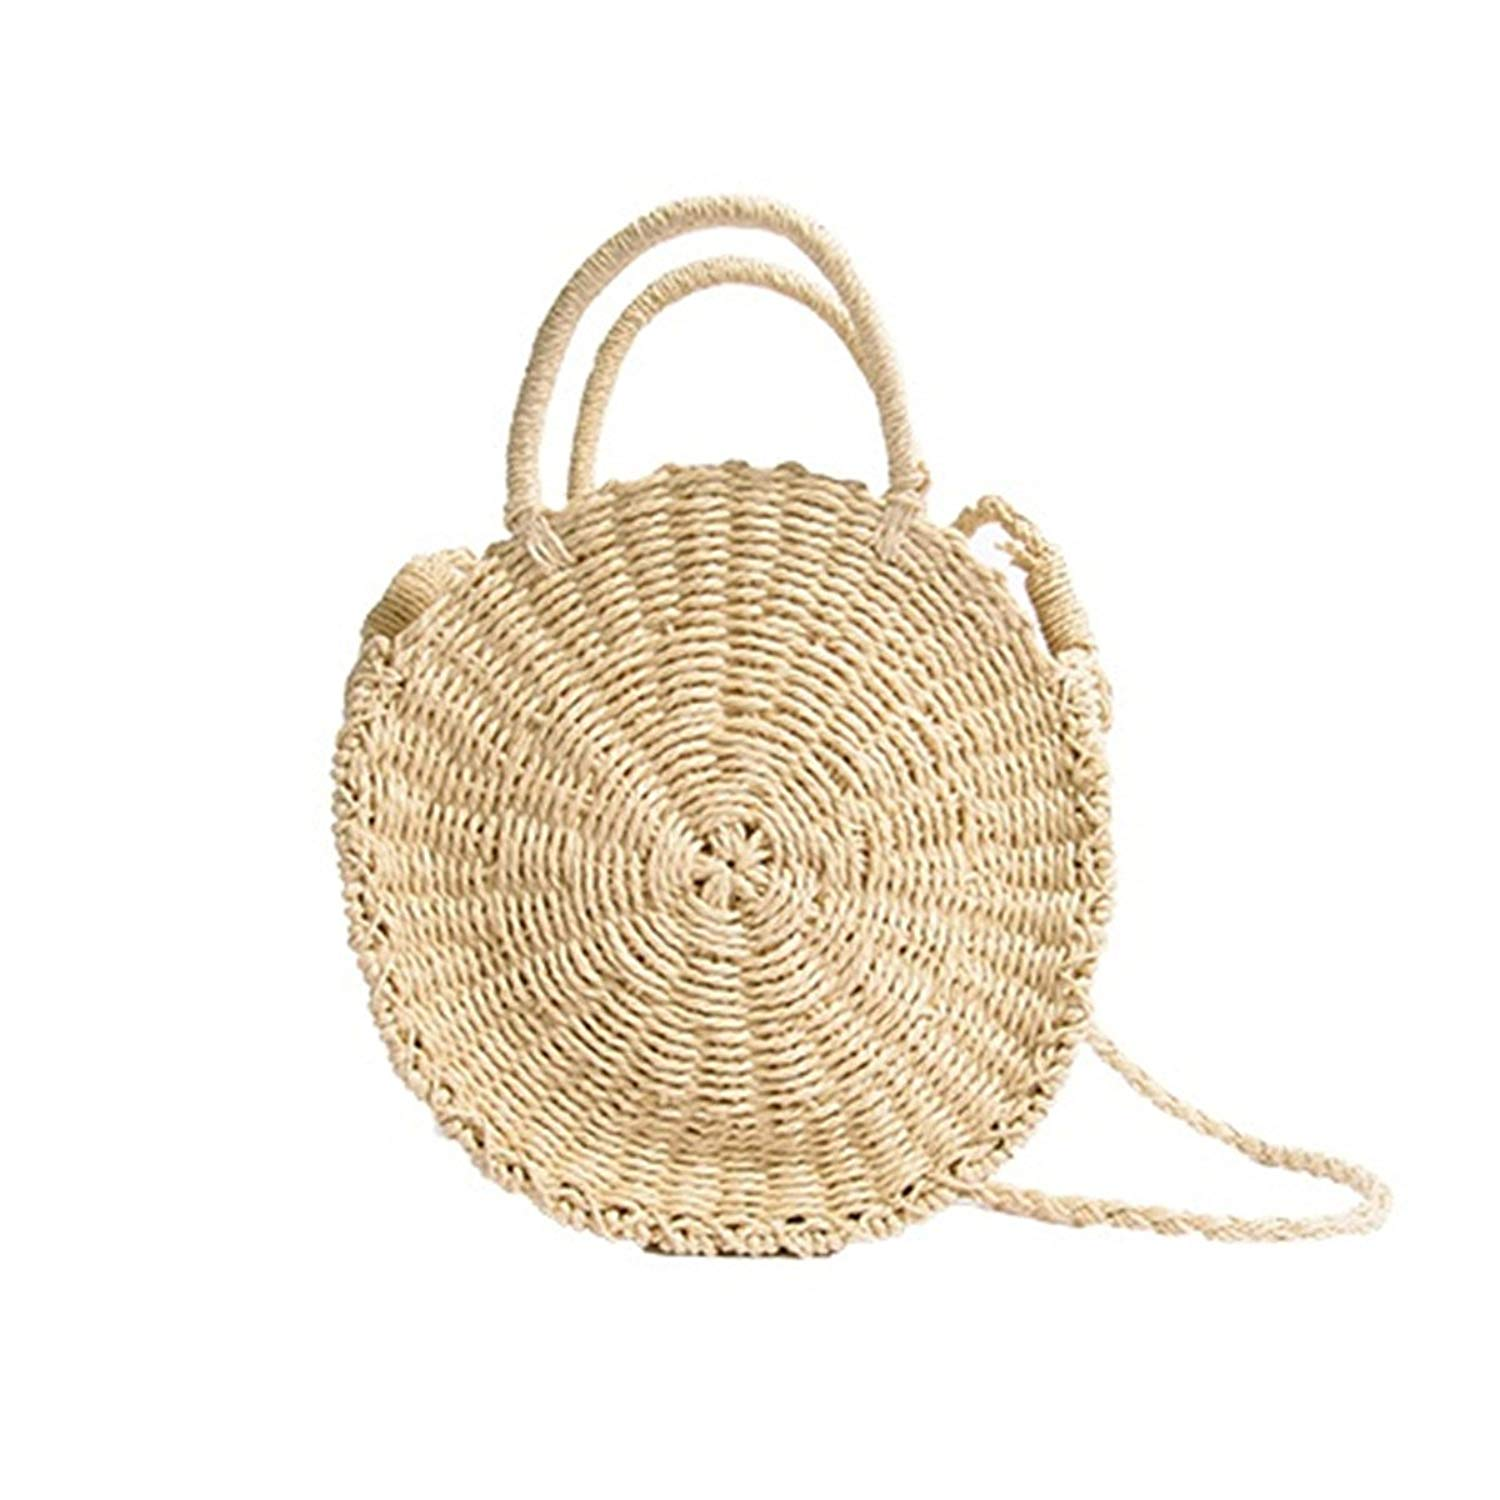 3e850be91eb2 Get Quotations · Andear Womens Straw Woven Handbags Summer Beach Holiday  Round Tote Bags Shoulder Crossbody Bags